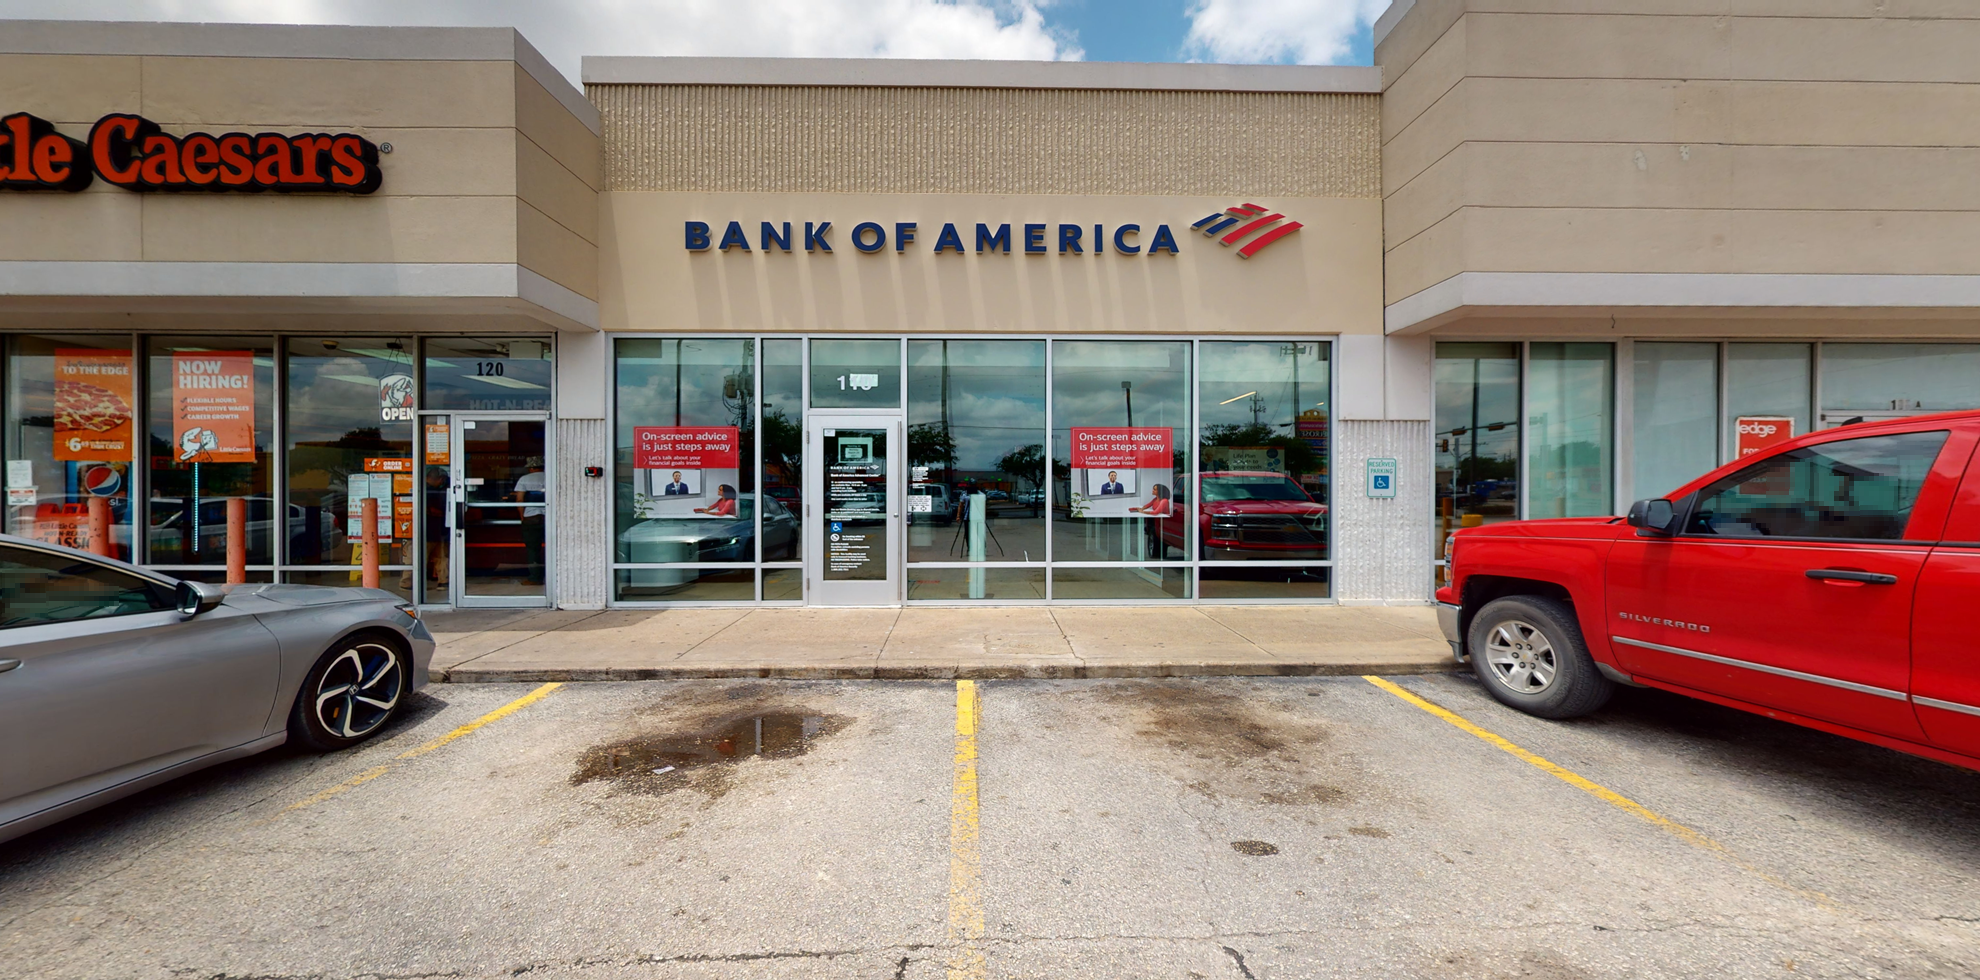 Bank of America Advanced Center with walk-up ATM | 110 S Wayside Dr, Houston, TX 77011